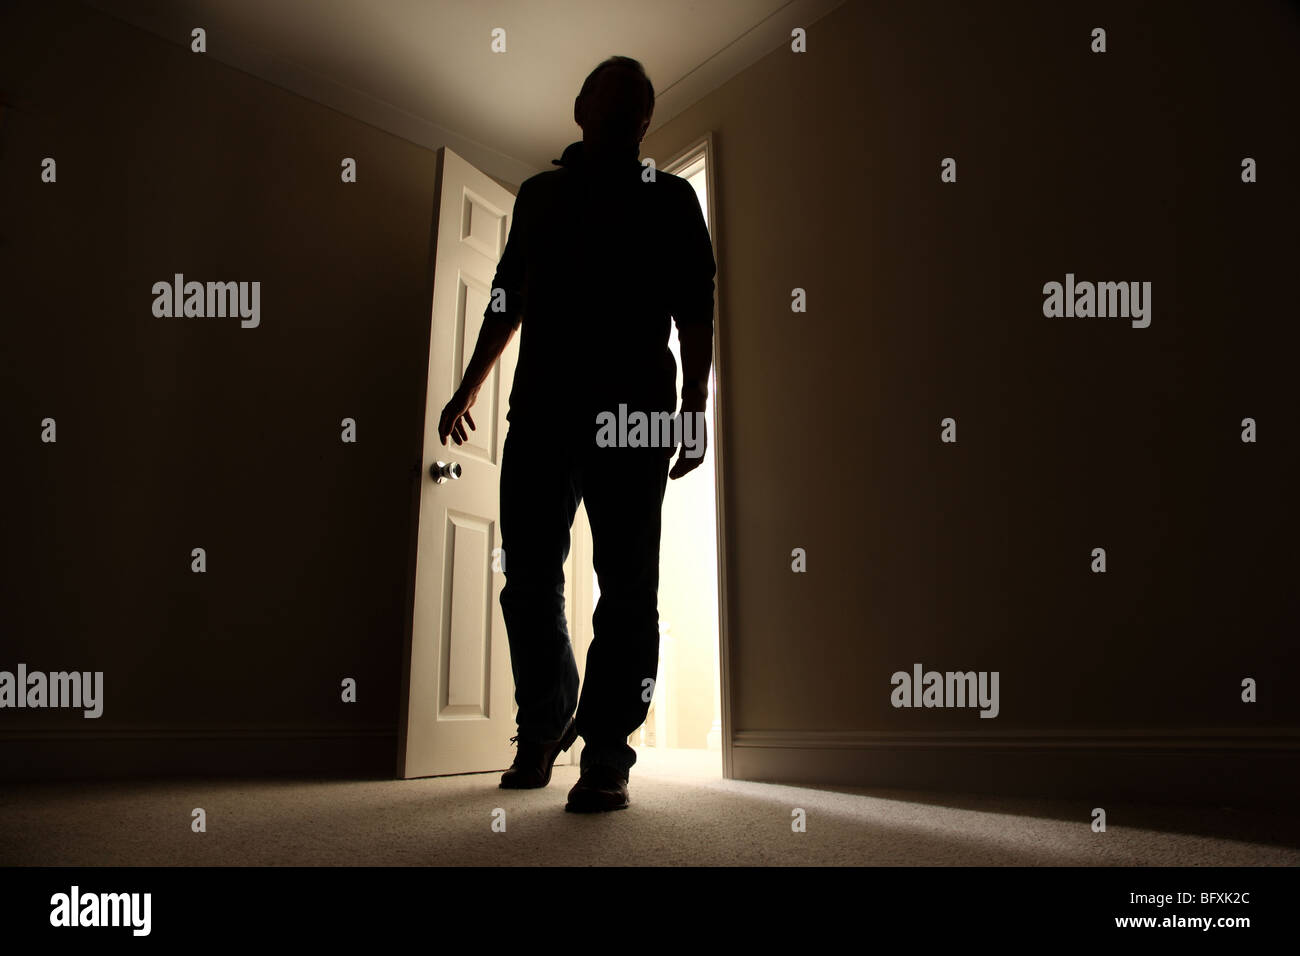 Silhouette of a male entering a dark room with a shaft of light ...